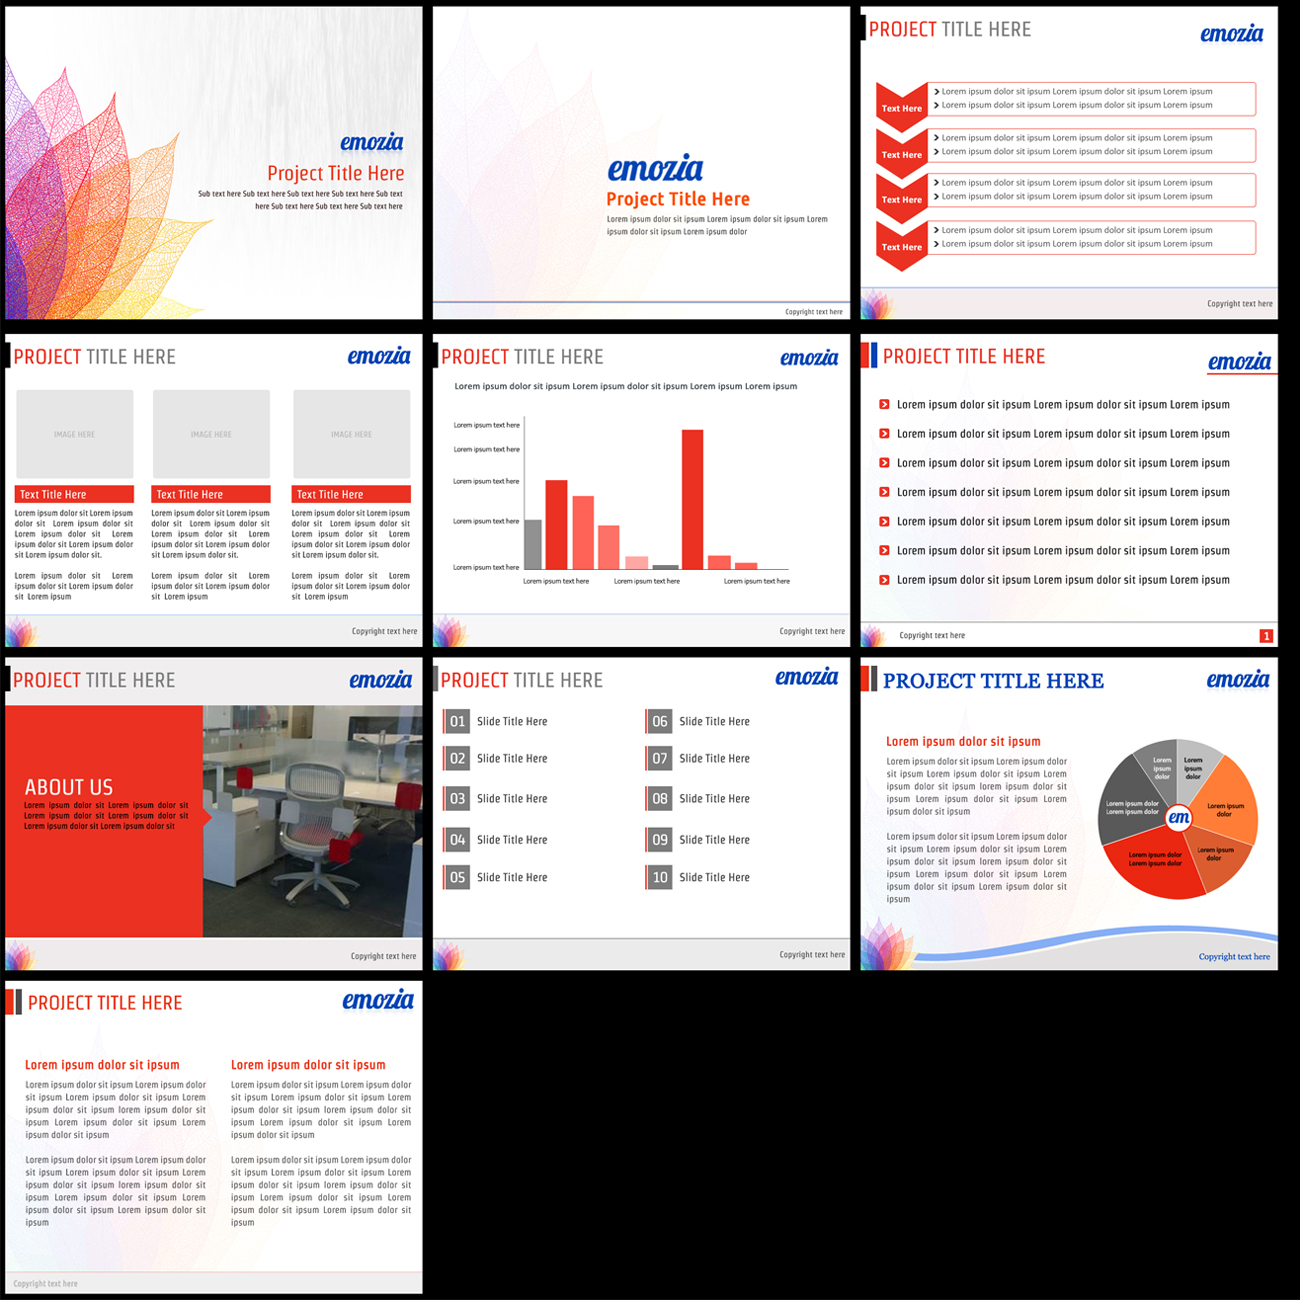 17 powerpoint designs software powerpoint design project for emozia